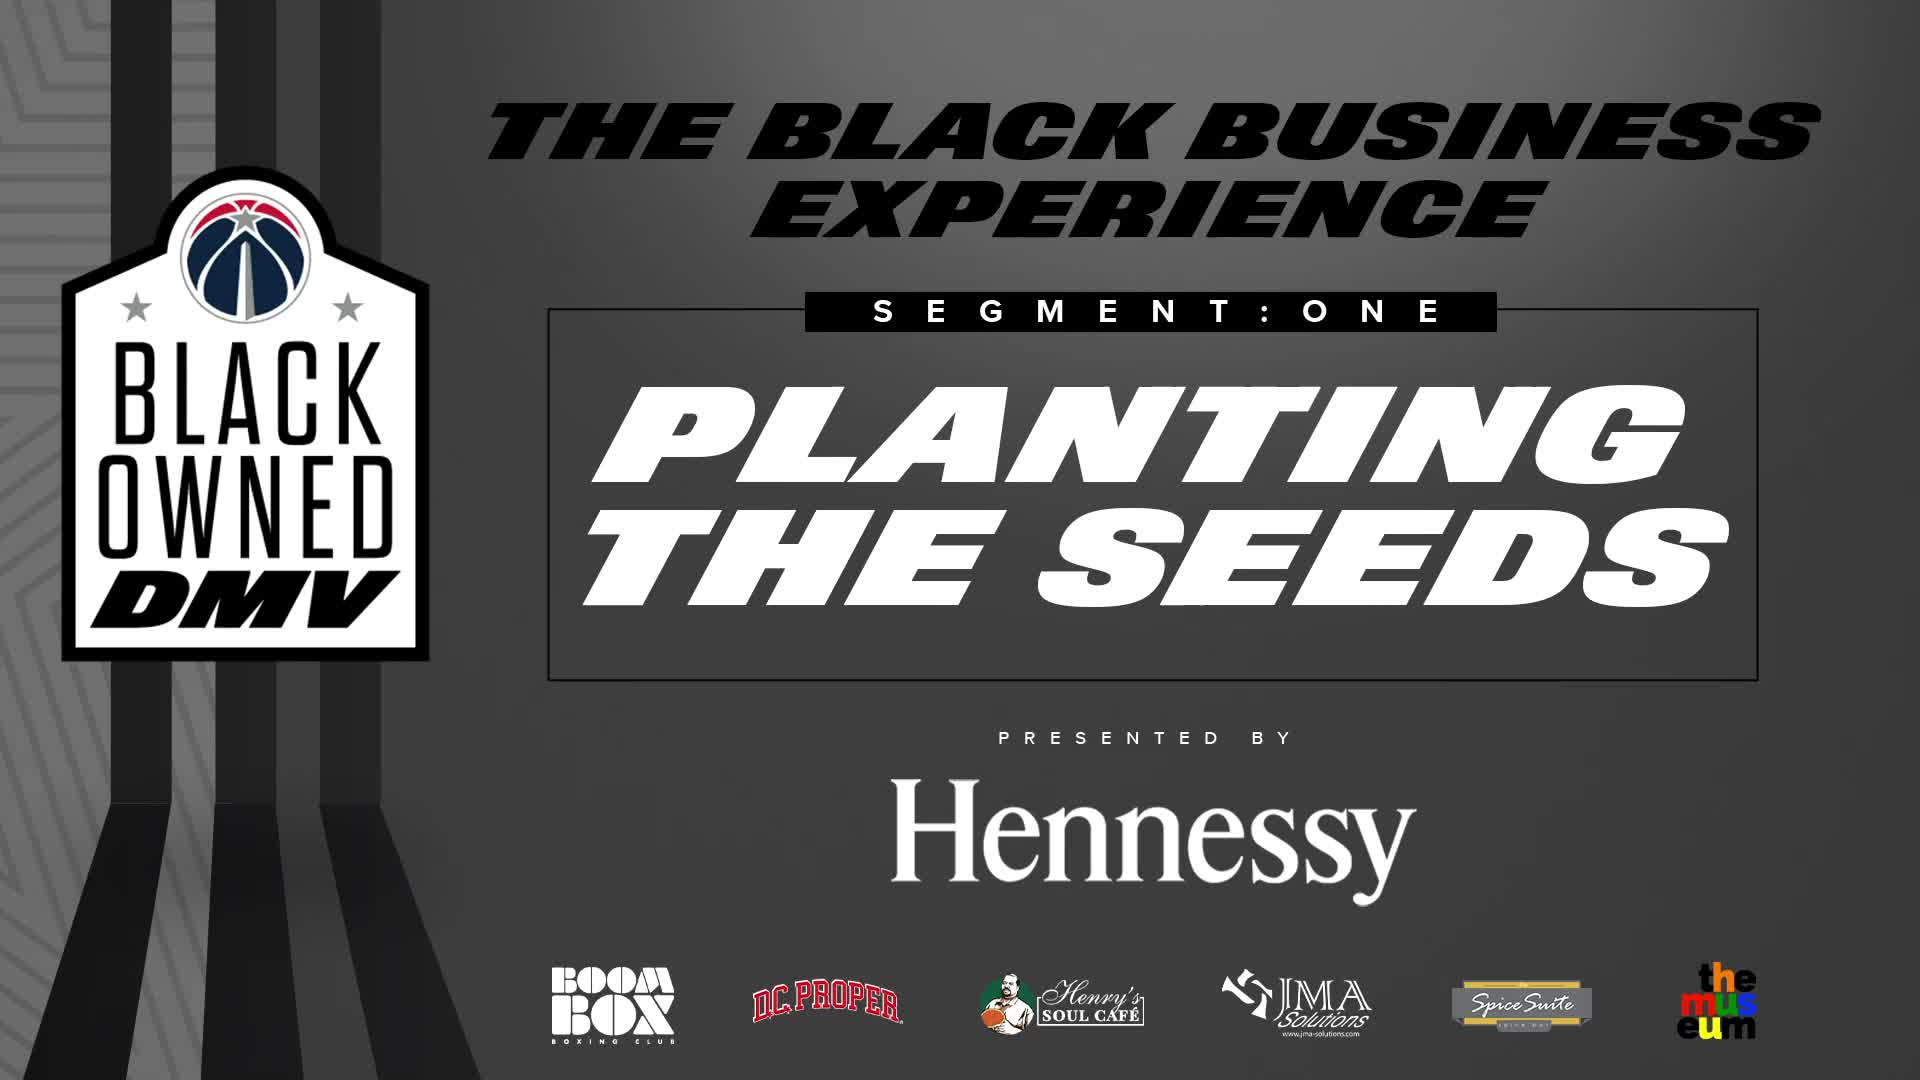 The Black Business Experience, Segment 1: Planting The Seeds